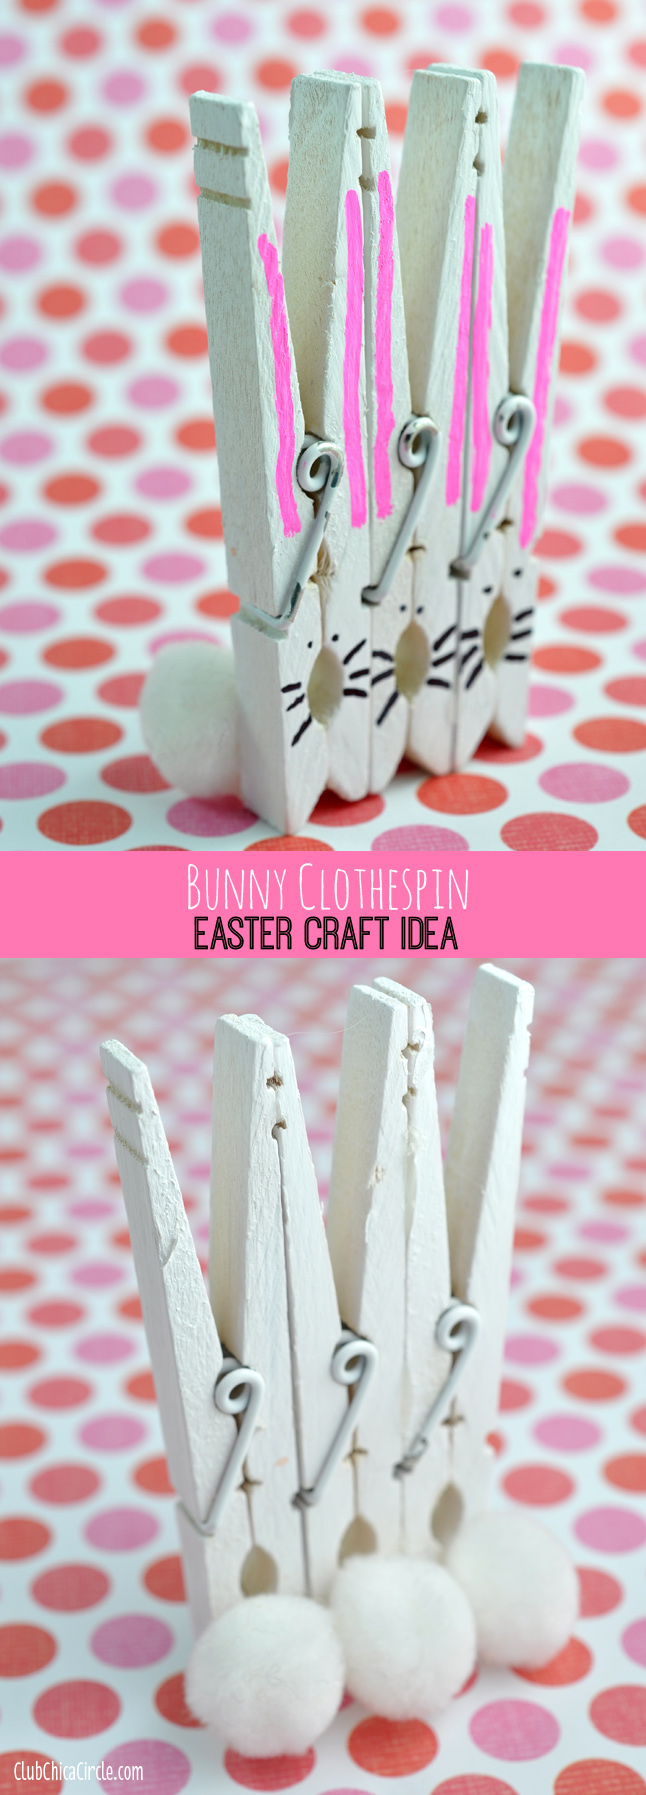 Bunny Clothespins Easter Craft Idea And Diy